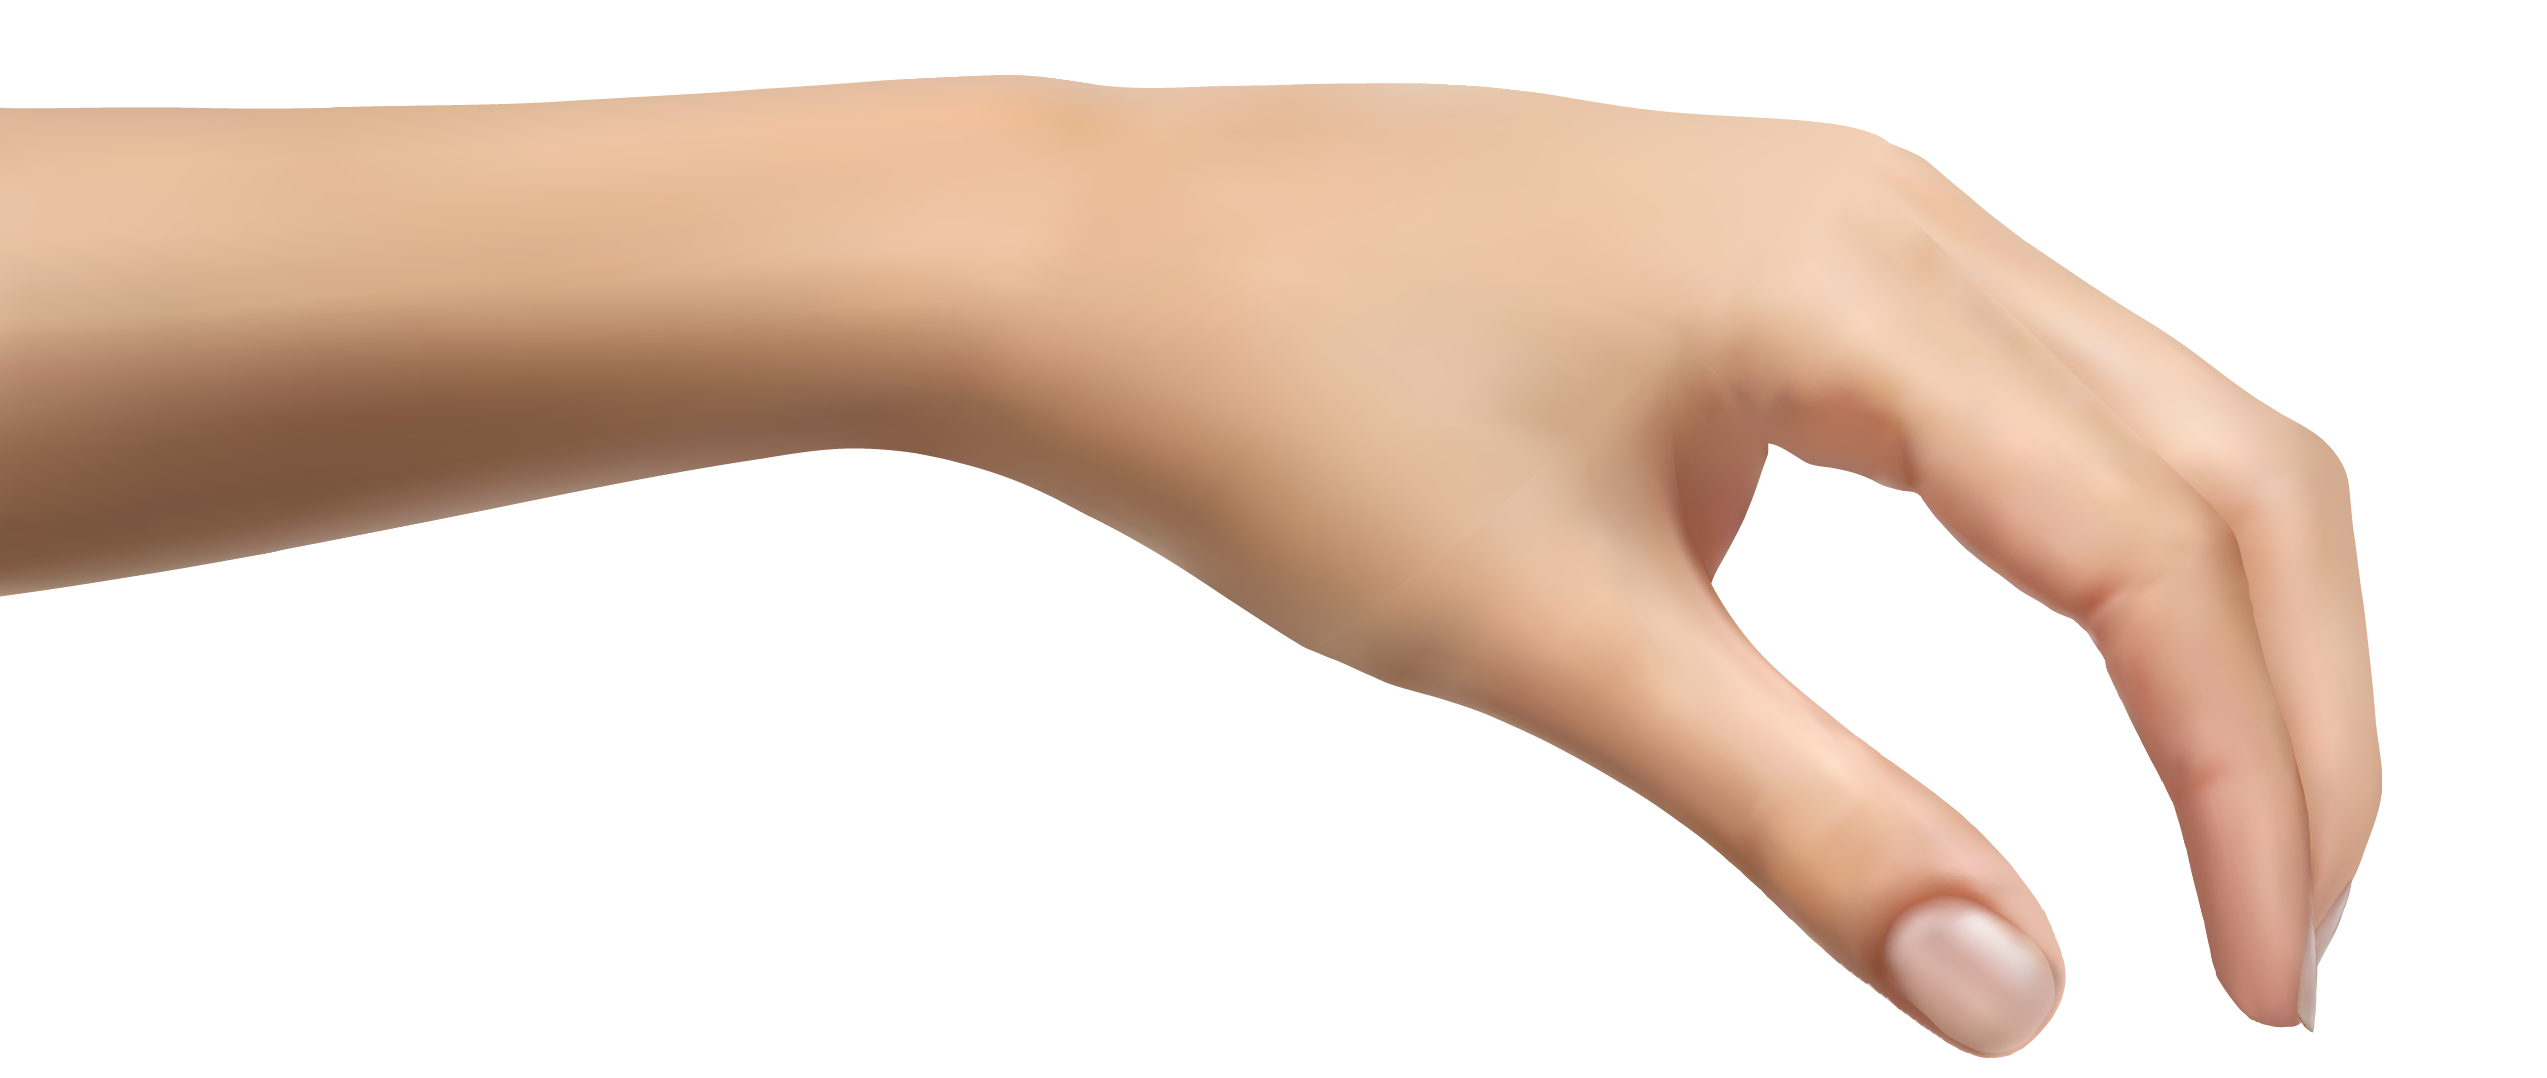 Human hand png picture. Clipart hands wrist